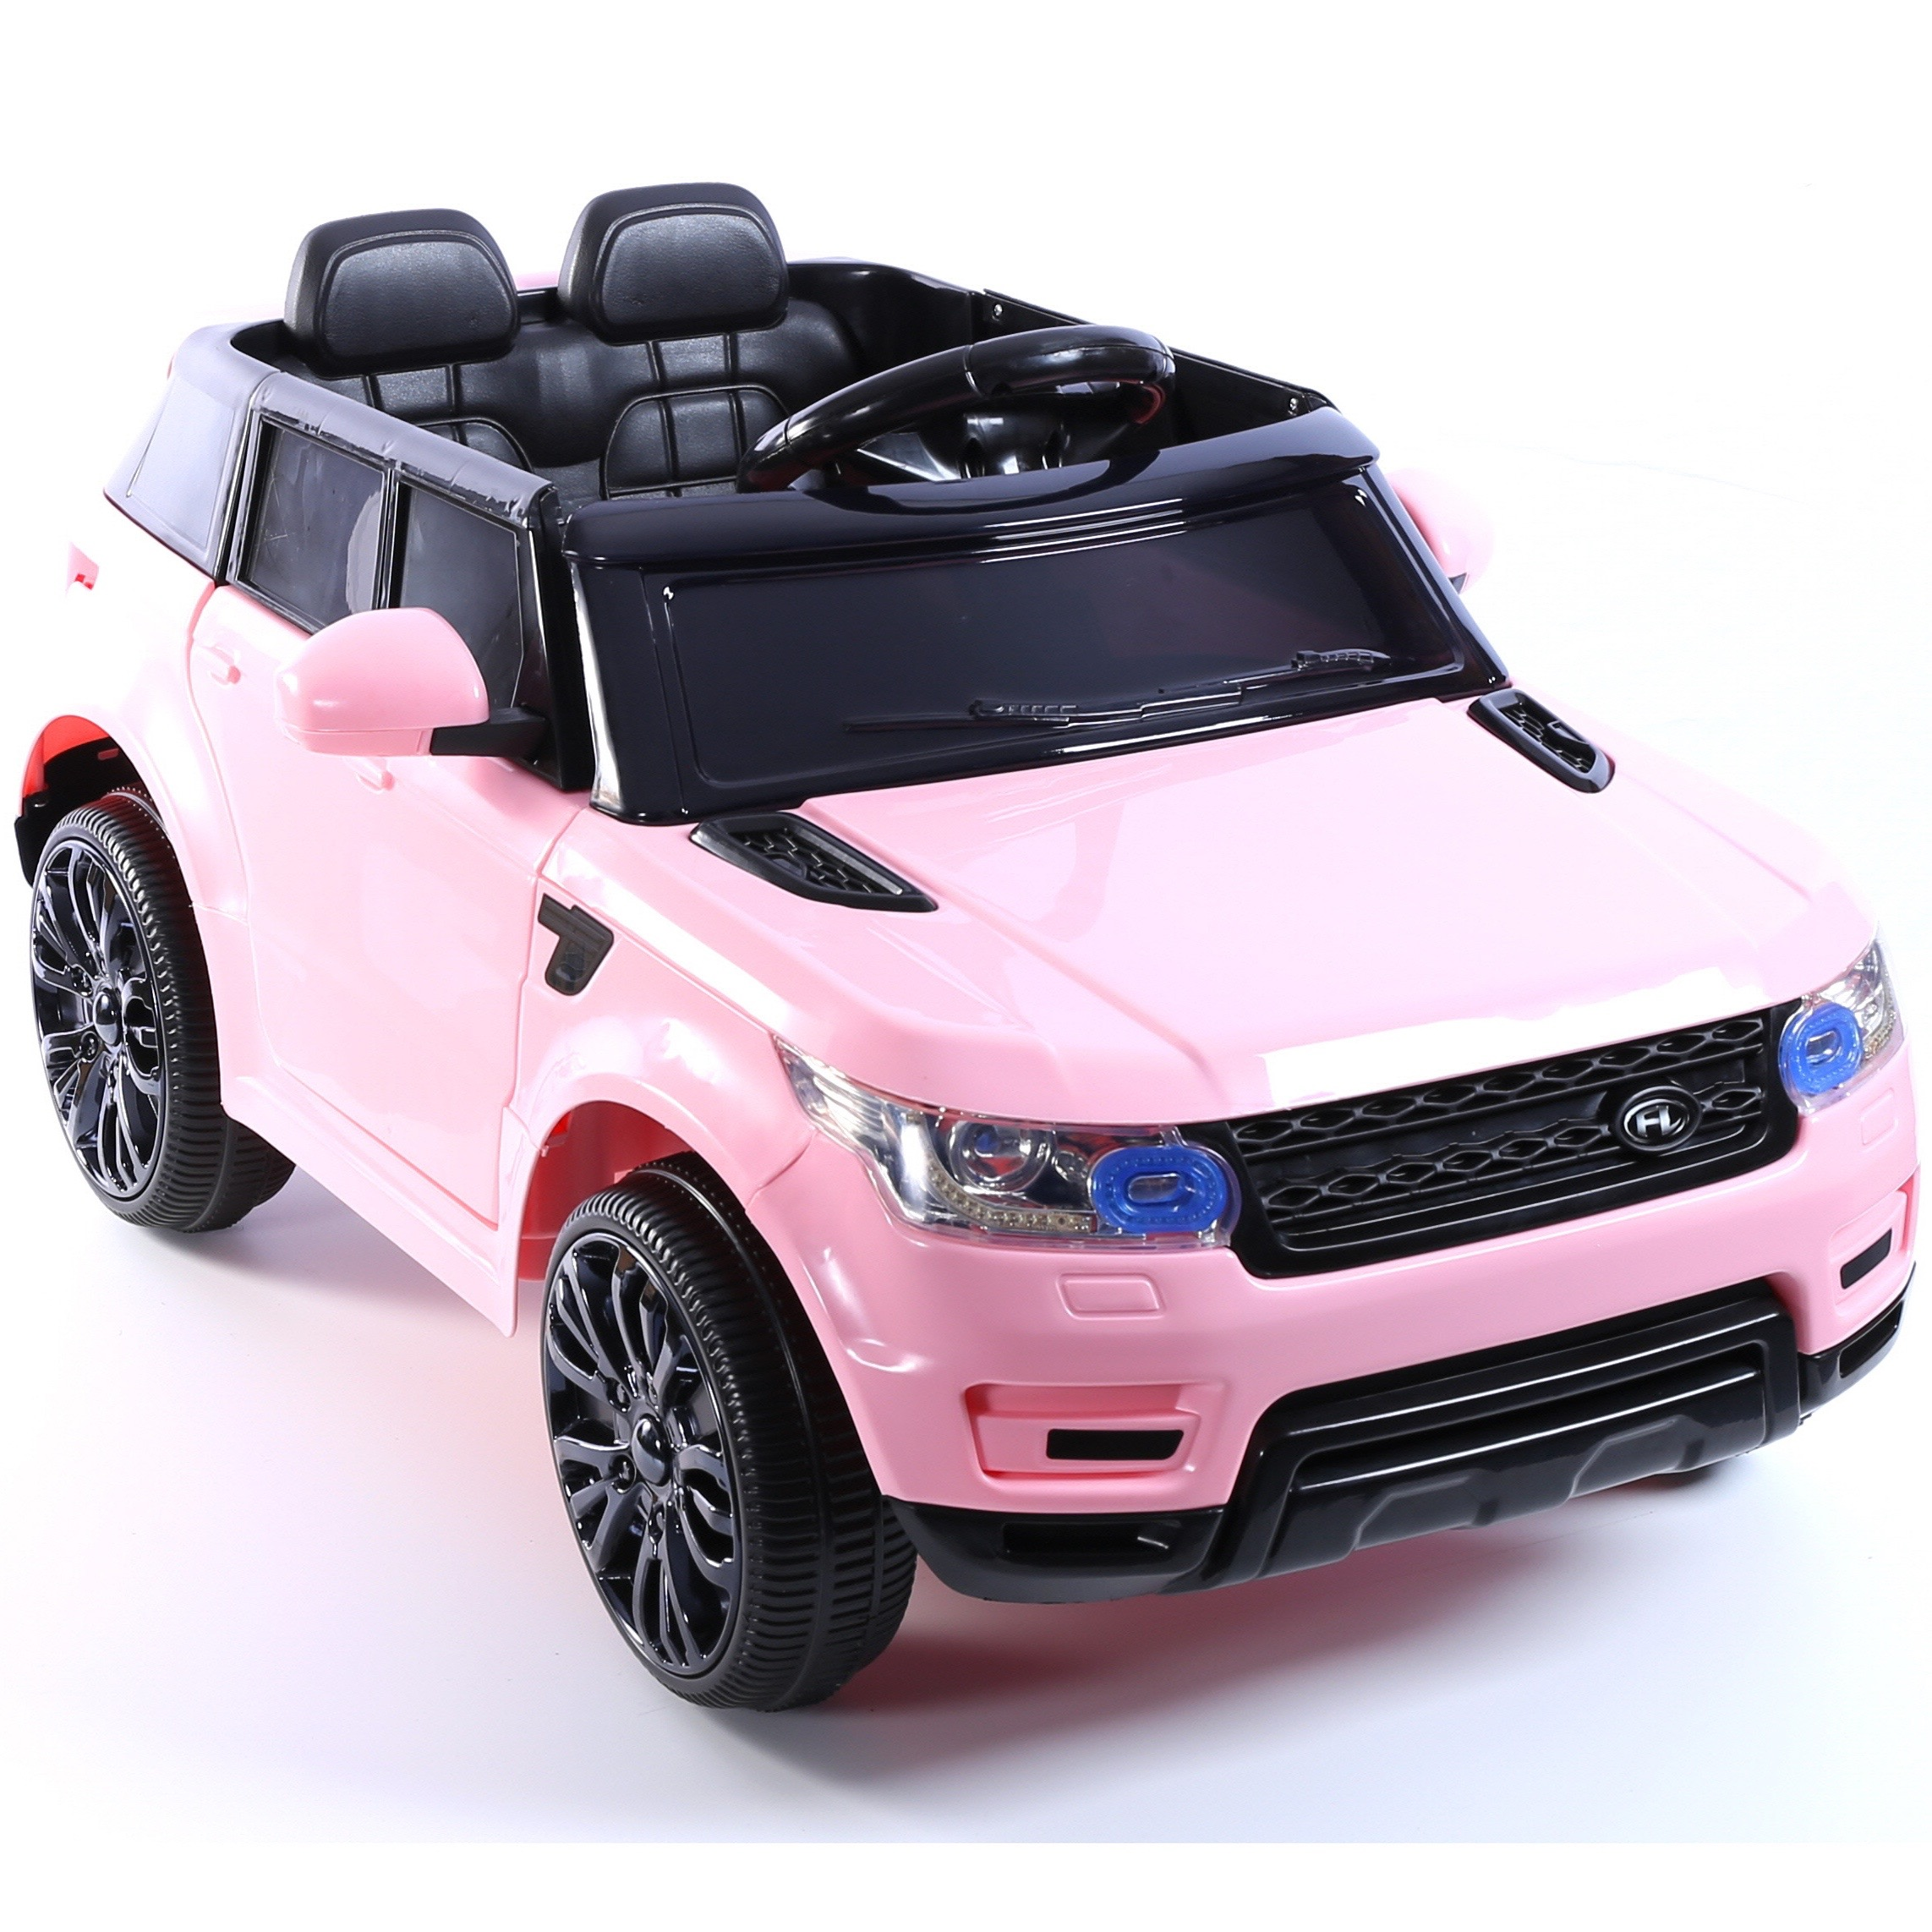 mini hse range rover style electric 12v child s ride on jeep pink 5060225288442 ebay. Black Bedroom Furniture Sets. Home Design Ideas